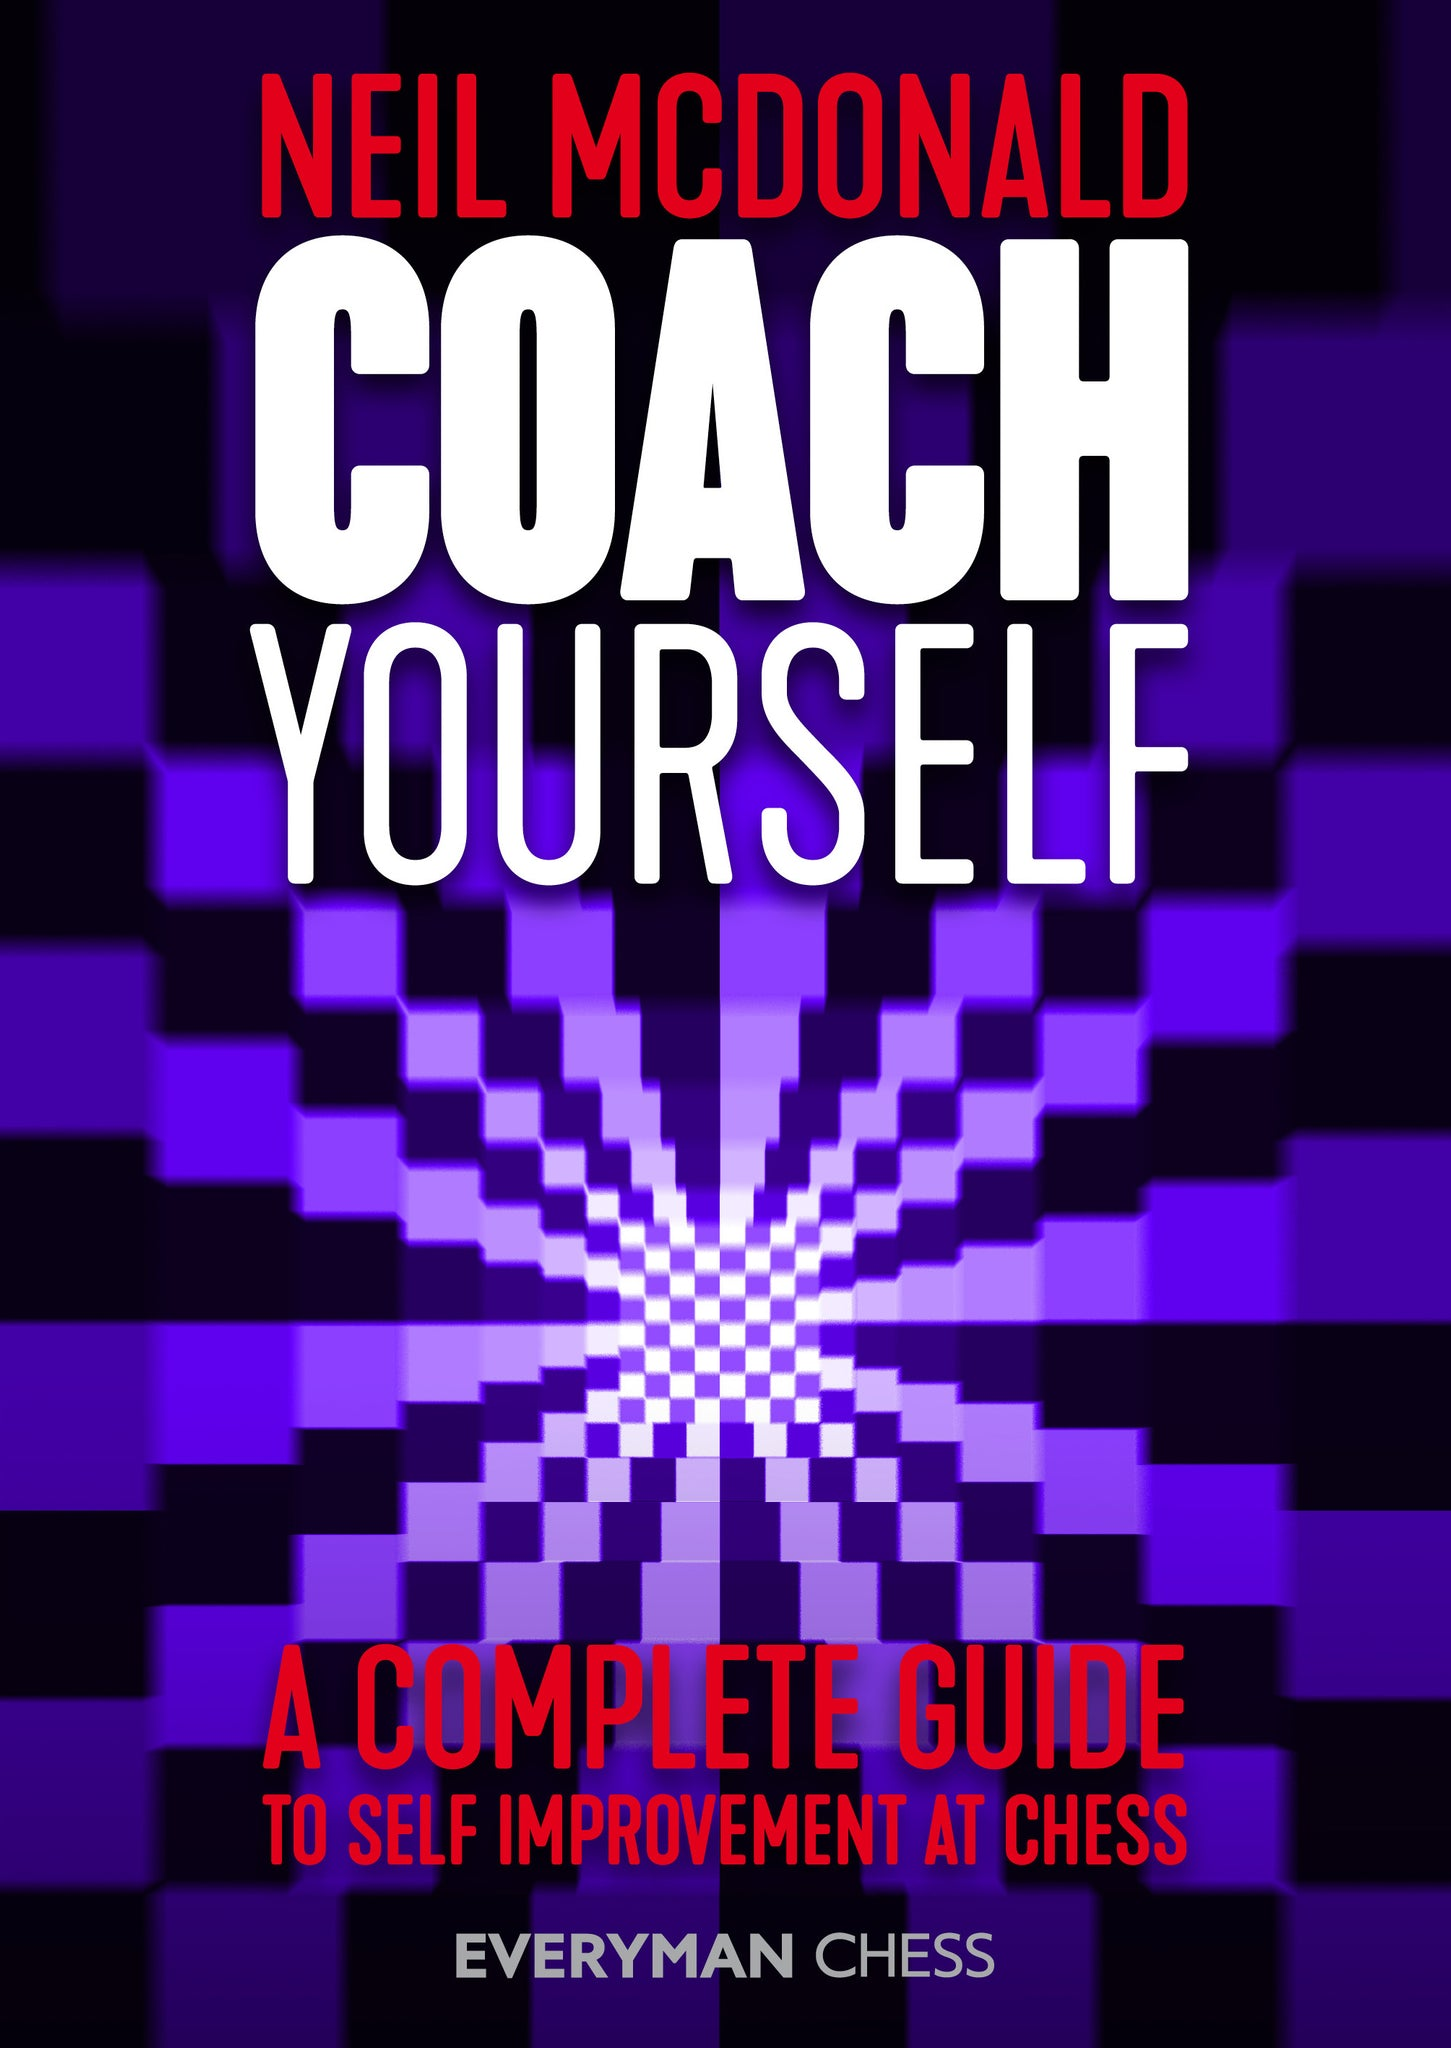 Coach Yourself (Neil McDonald)  9781781945124_1024x1024@2x